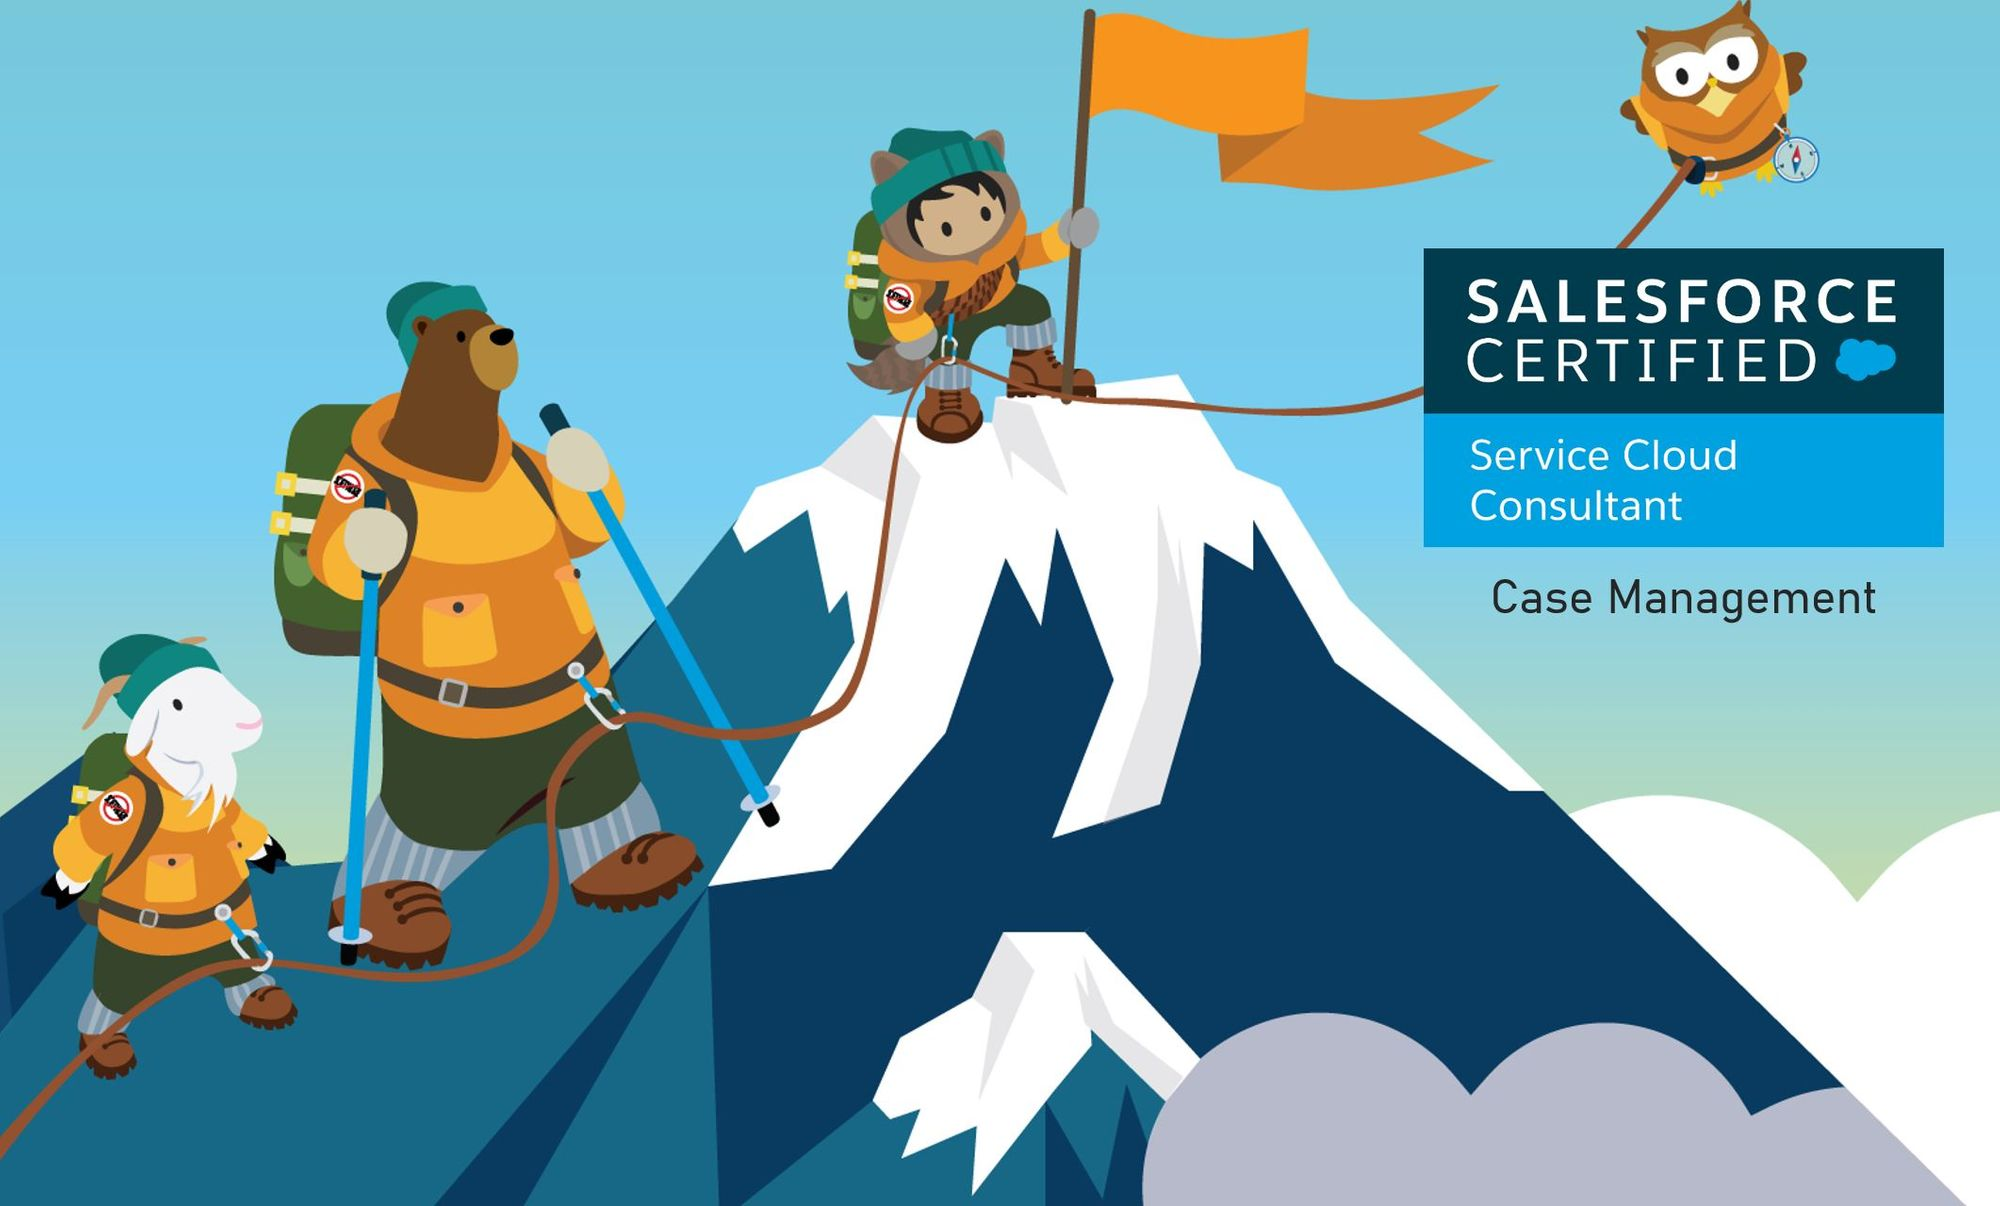 Salesforce Service Cloud Consultant Exam Preparation: Case Management